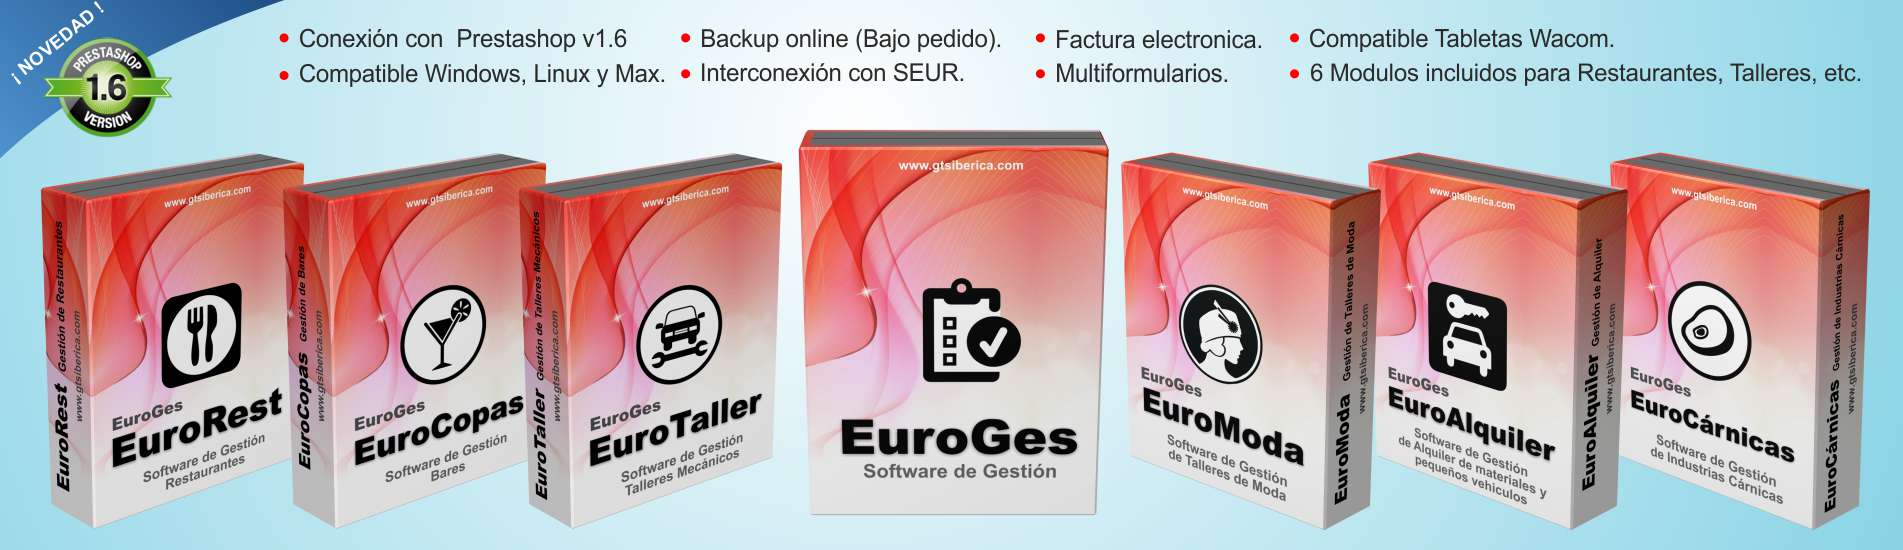 productos-euroges-2014